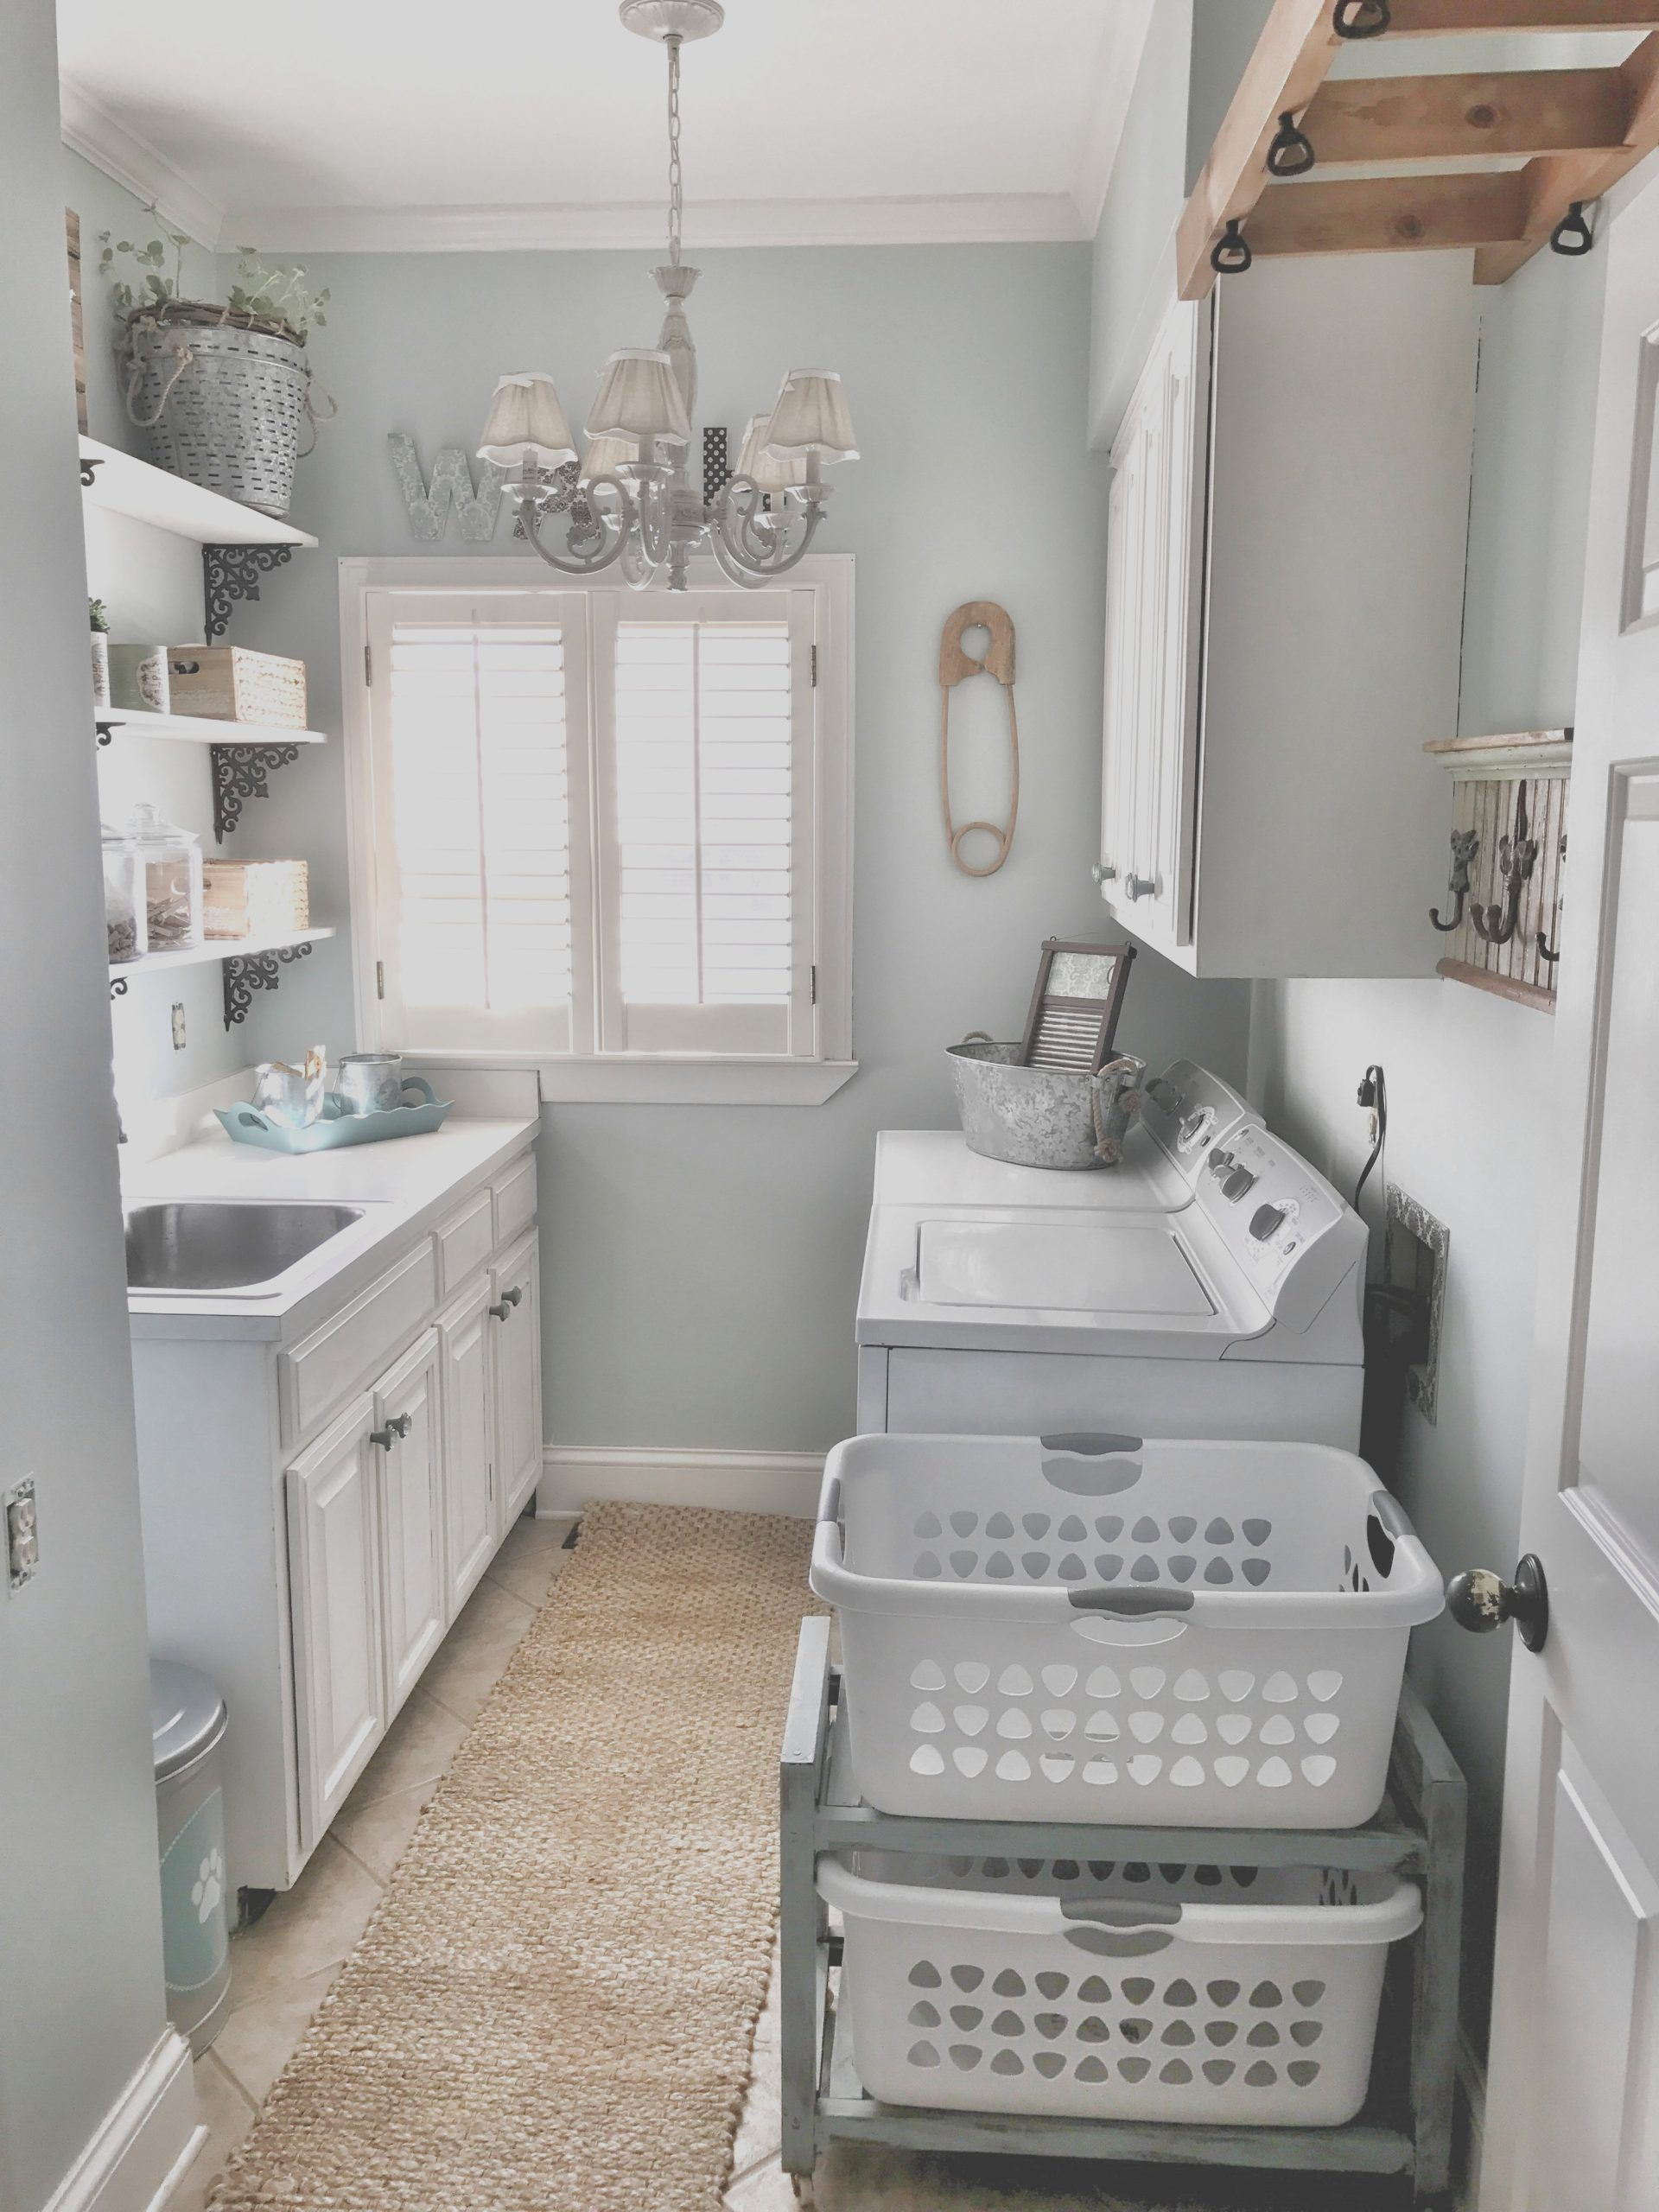 2016 Paint Color Trends Laundry Room Colors Laundry Room Paint Color Room Wall Colors